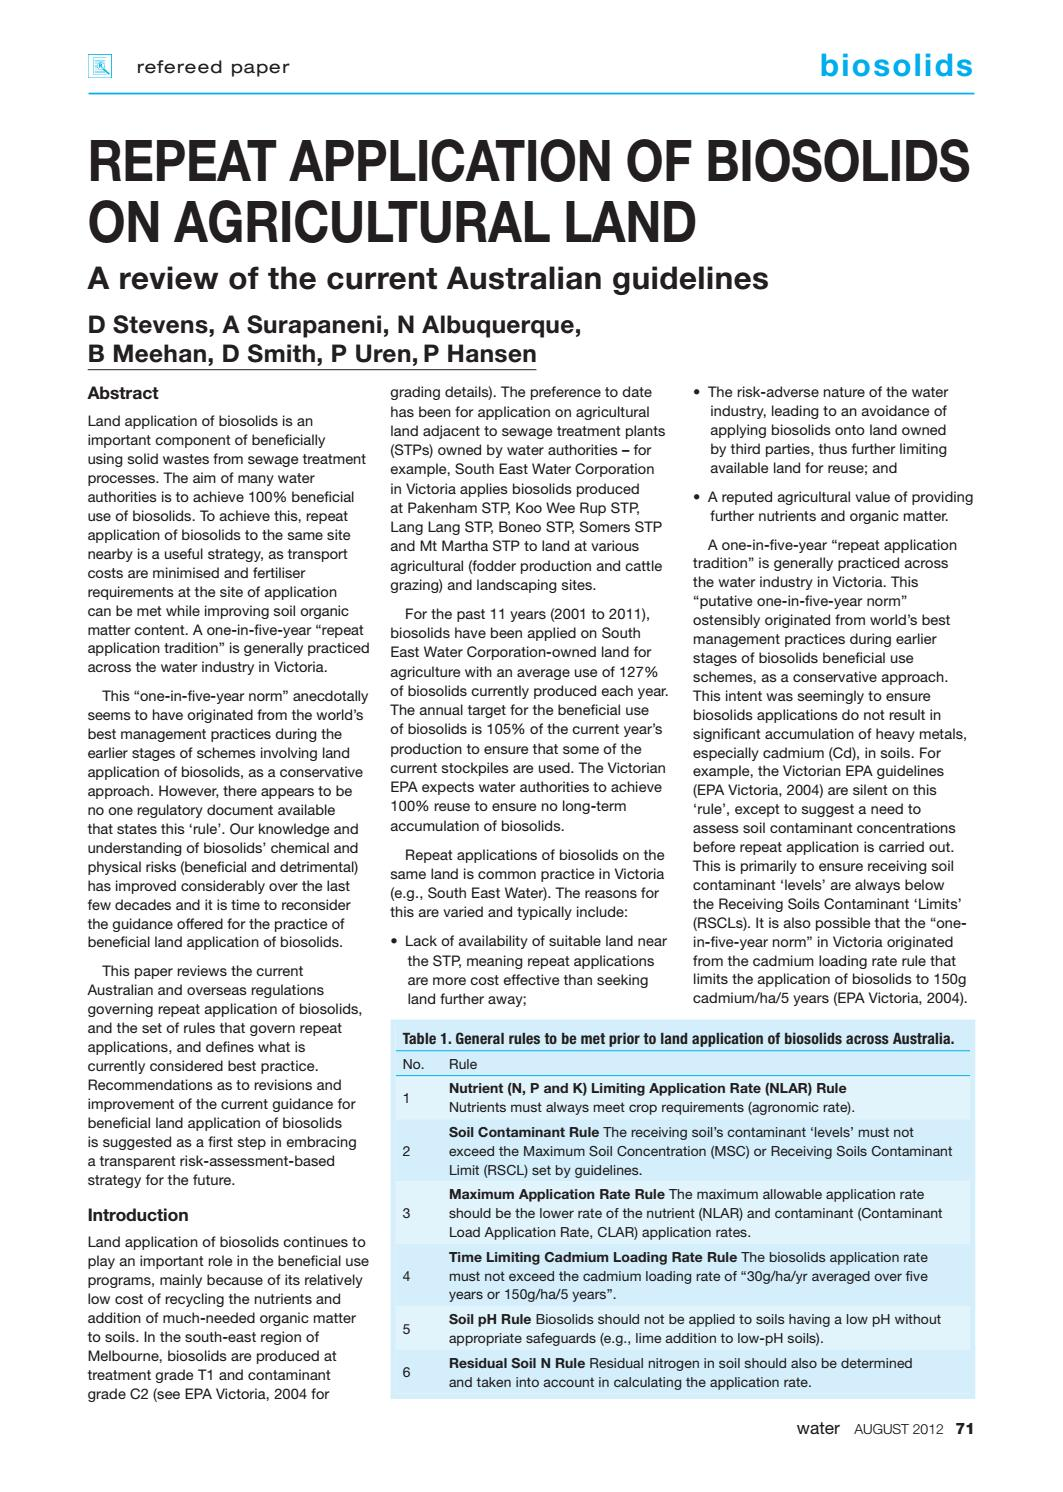 Water Journal August 2012 by australianwater - issuu